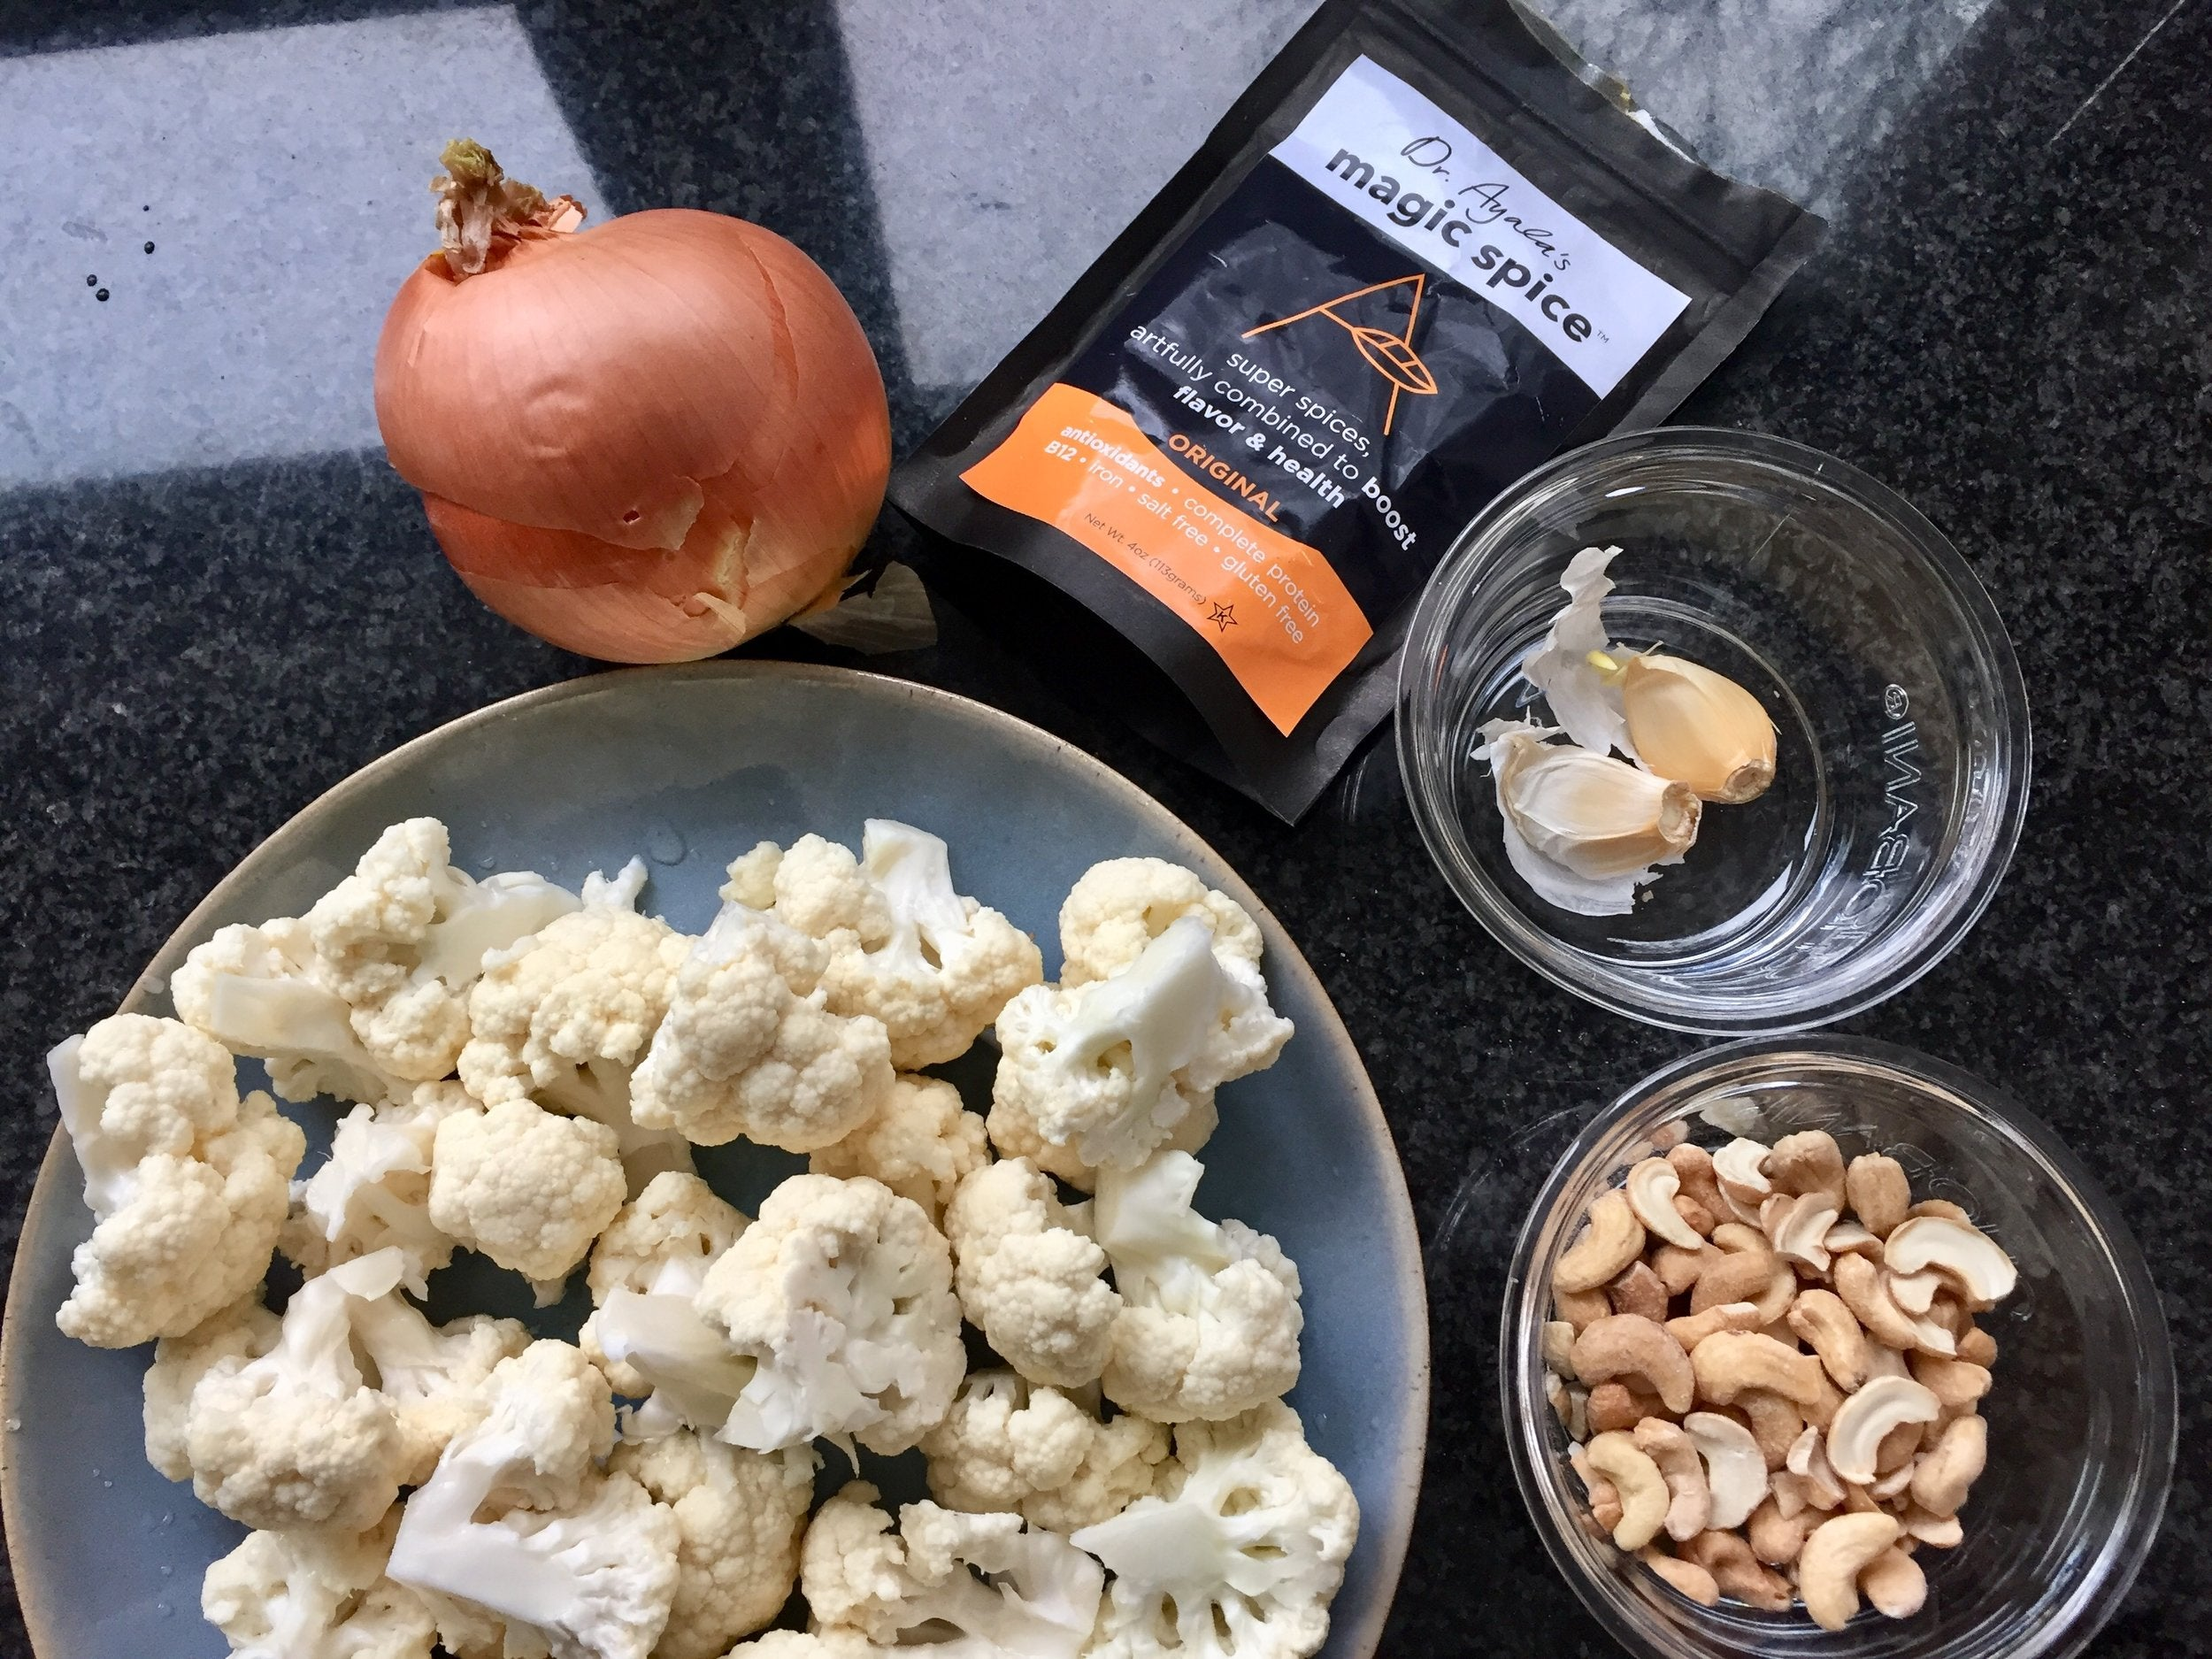 Cauliflower, cashews, onion, garlic, Dr. Ayala's Magic Spice